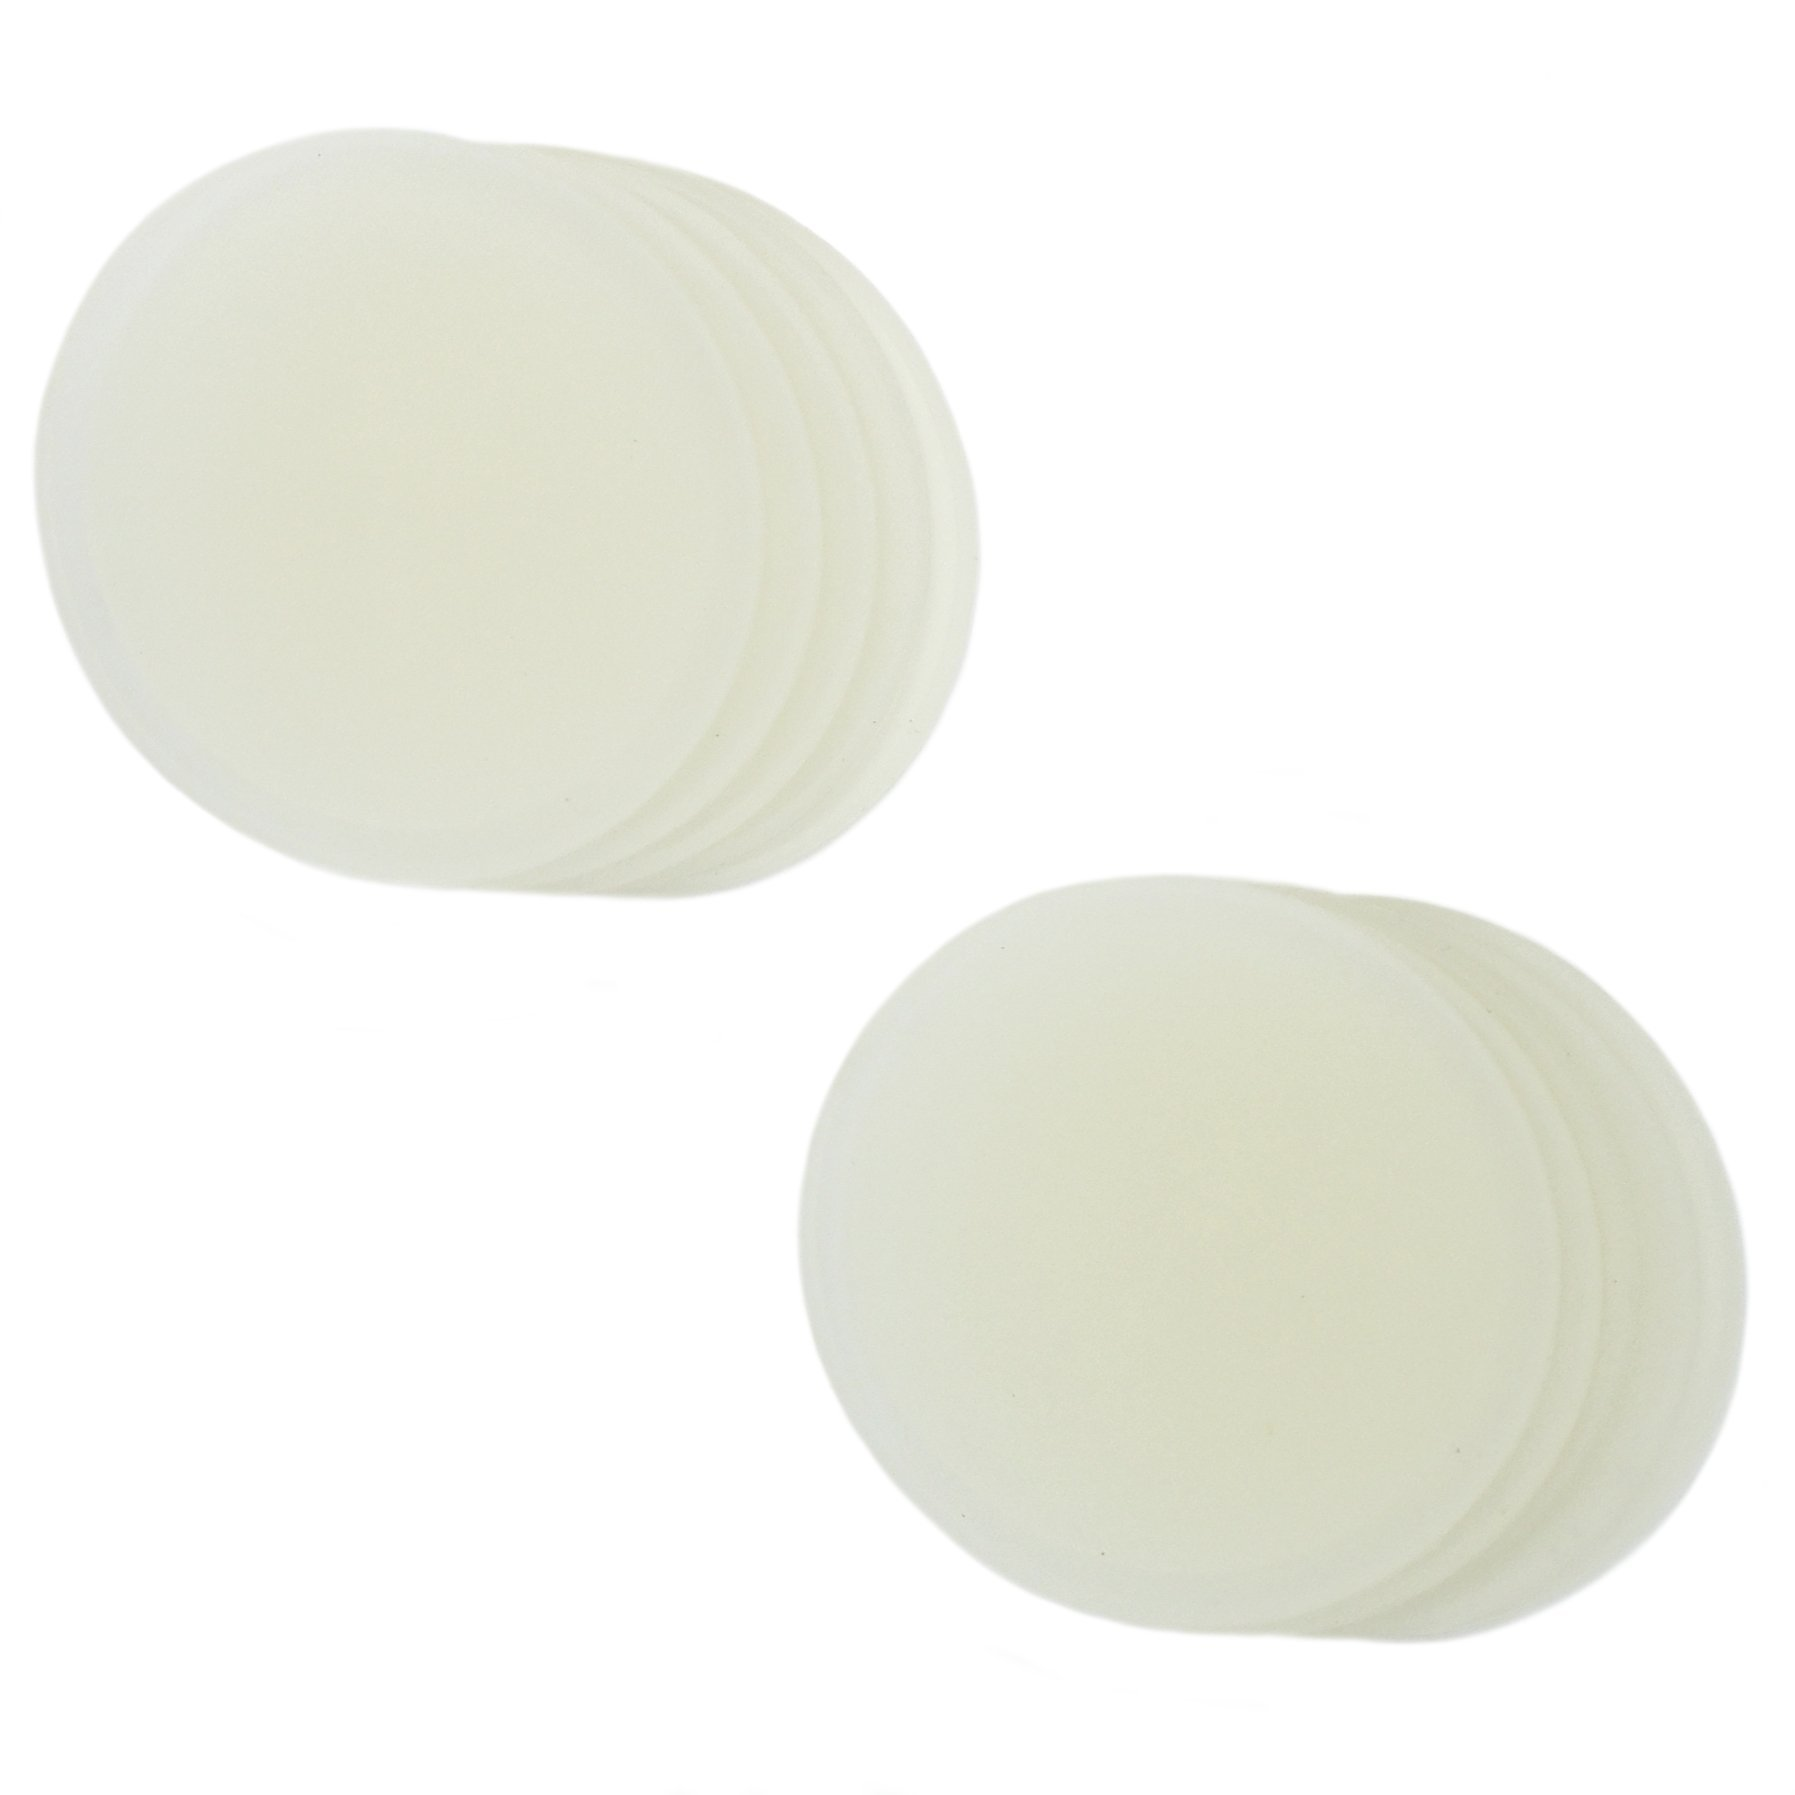 Zoie + Chloe Silicone Seals & Lids for Mason Canning Jars - 10 Pack - Wide Mouth